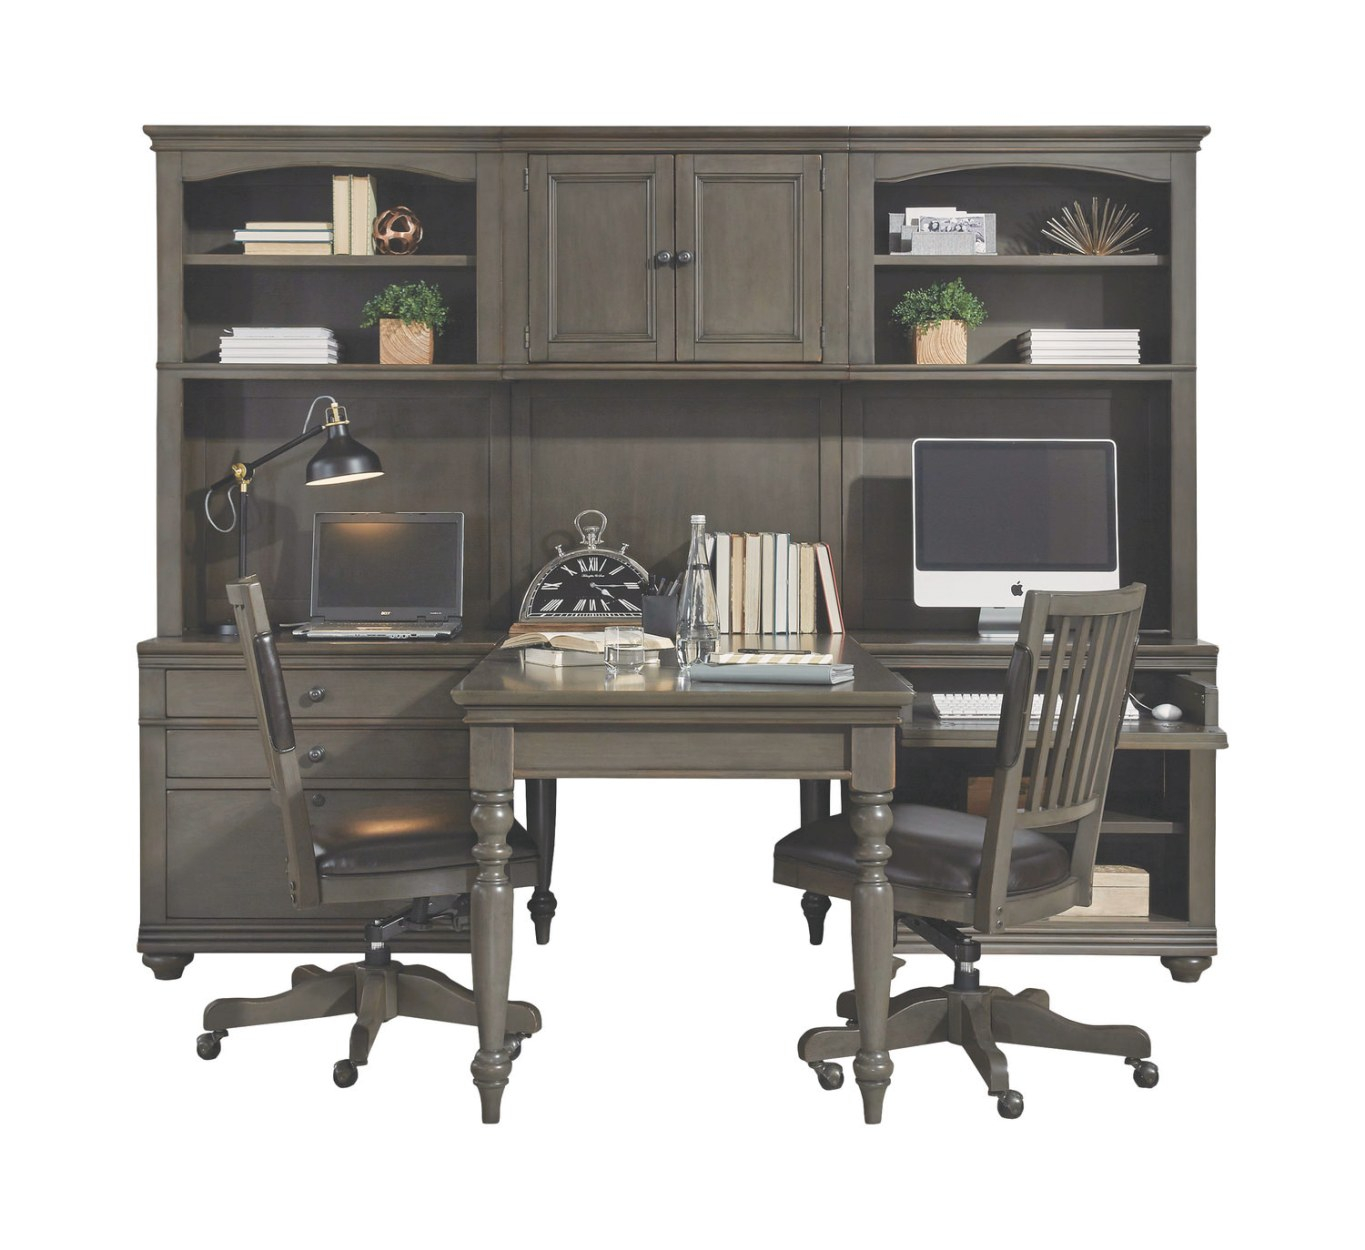 James 3 Bay Wall With Peninsula Writing Desk throughout Writing Desk With Hutch